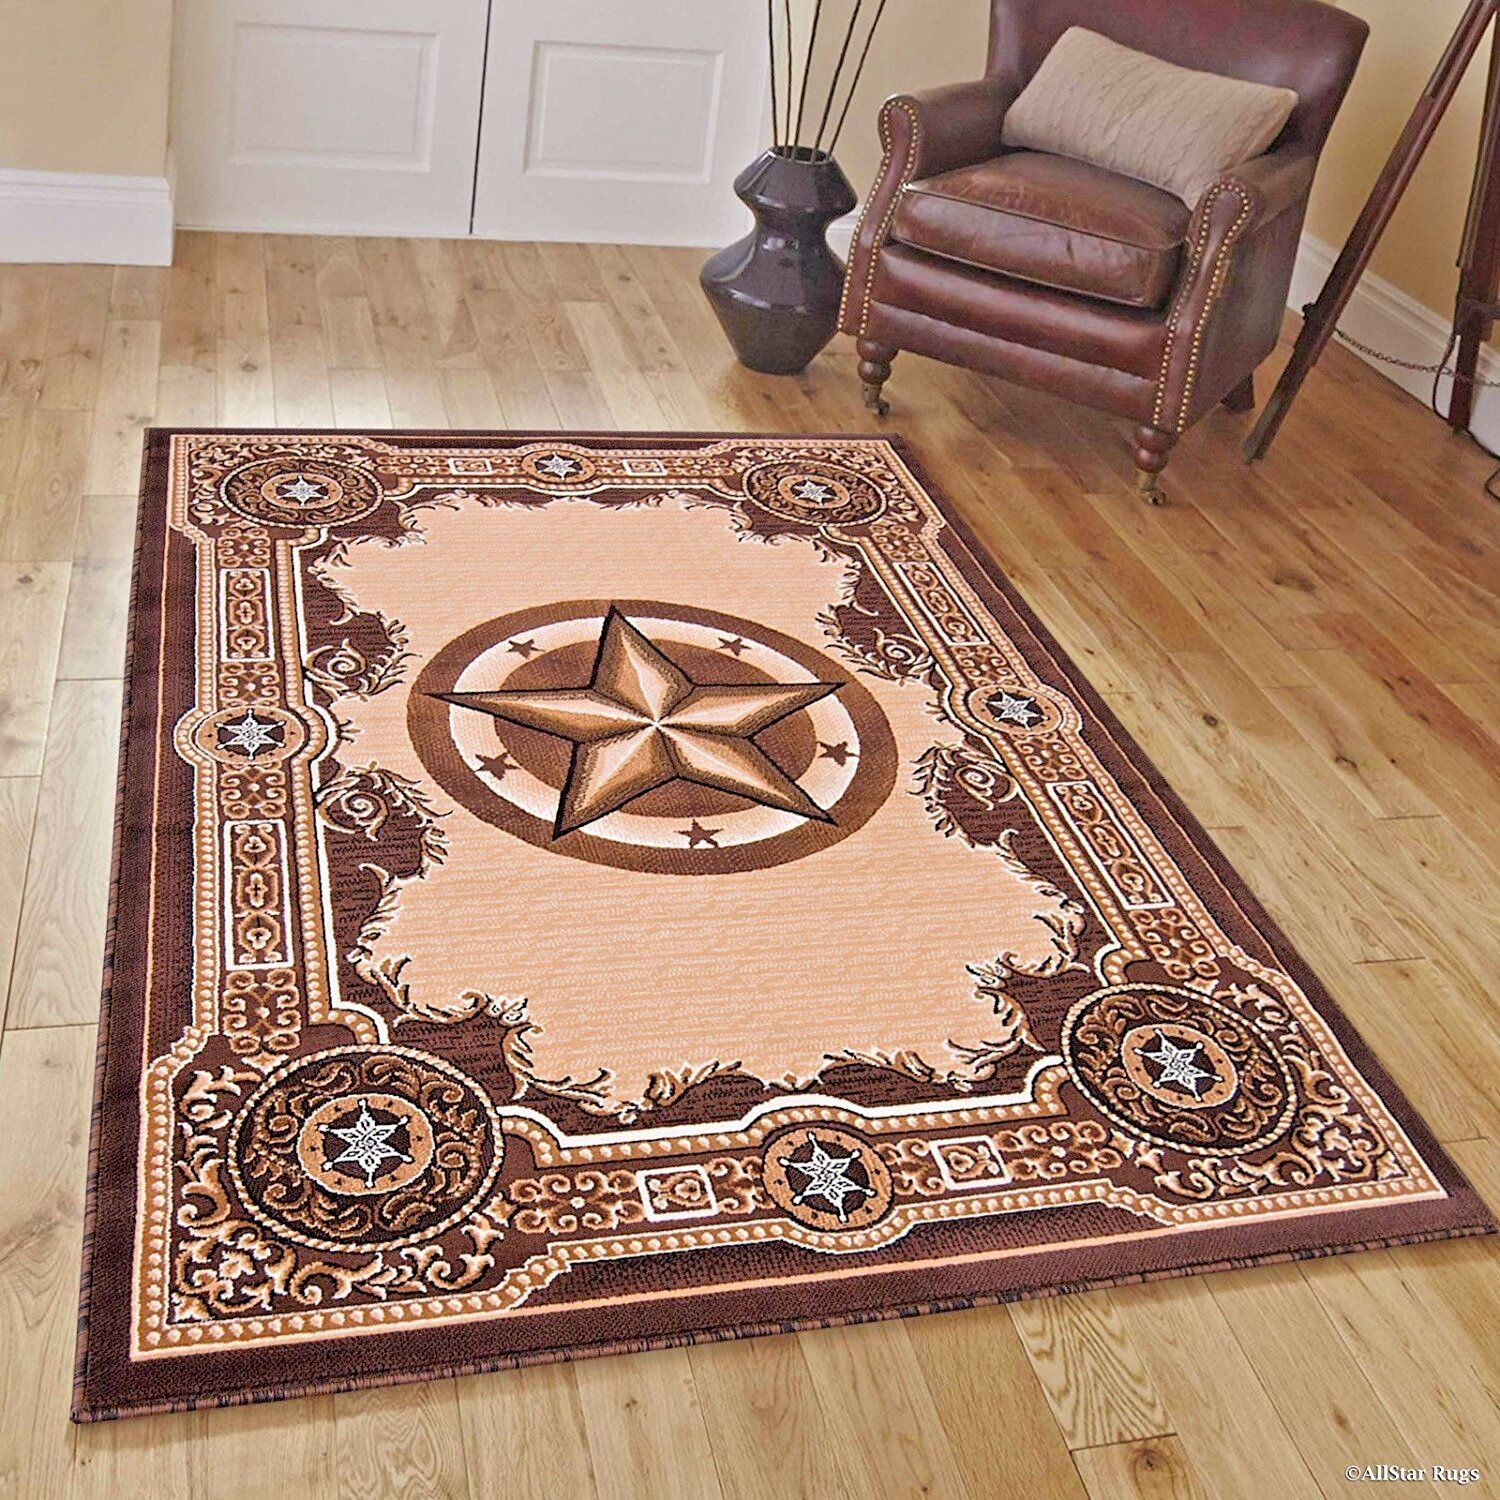 Rugs Area Rugs 8x10 Area Rug Carpet Large Rugs 5x7 Texas Star